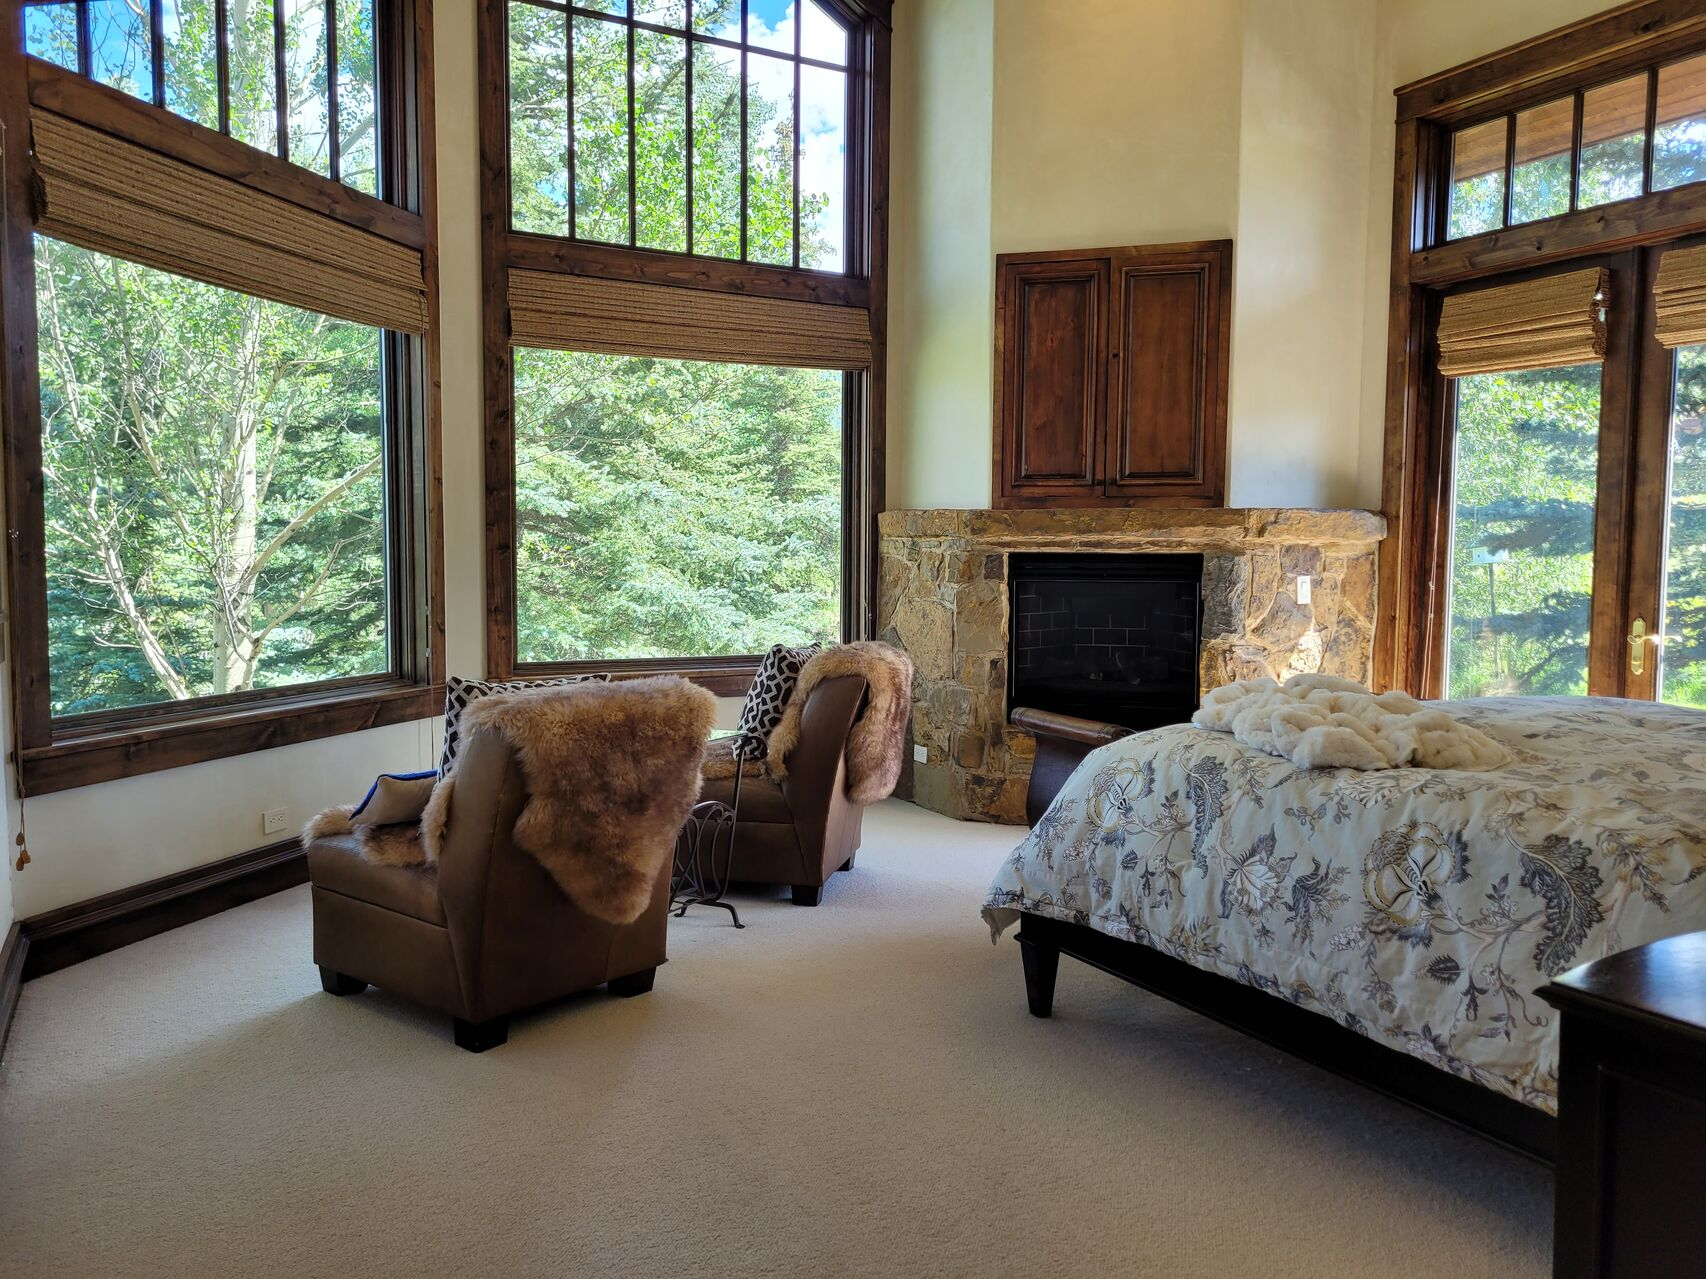 Large bedroom with seating area overlooking tree view